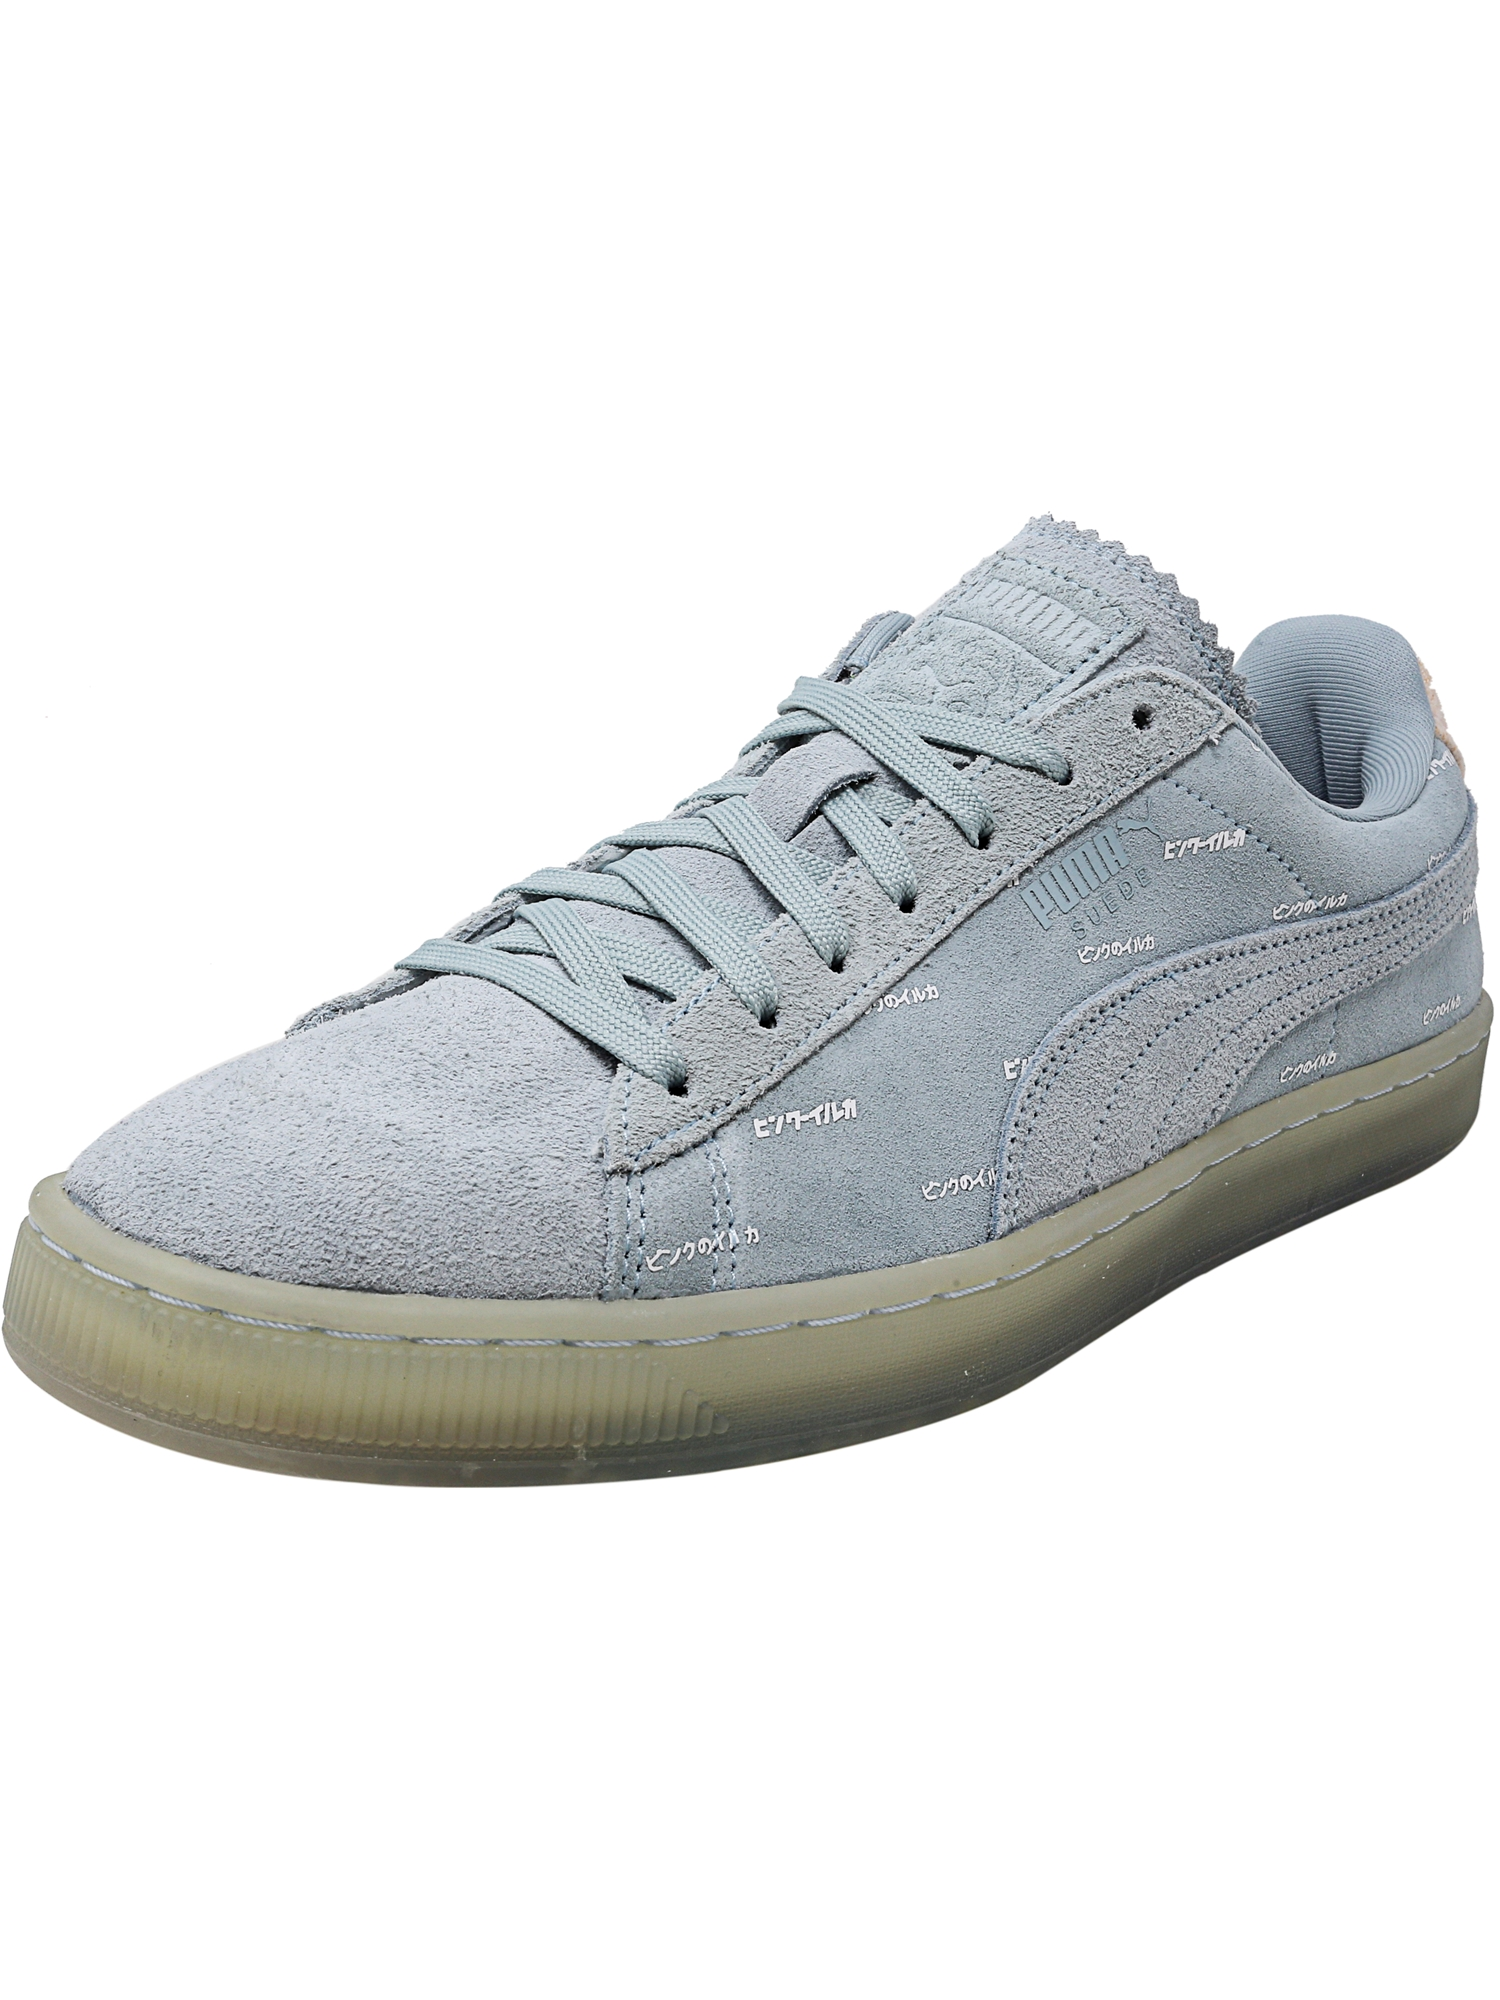 Puma Men's V2 Pink Dolphin Ether / Caramel Cream Ankle-High Suede Fashion Sneaker - 8.5M